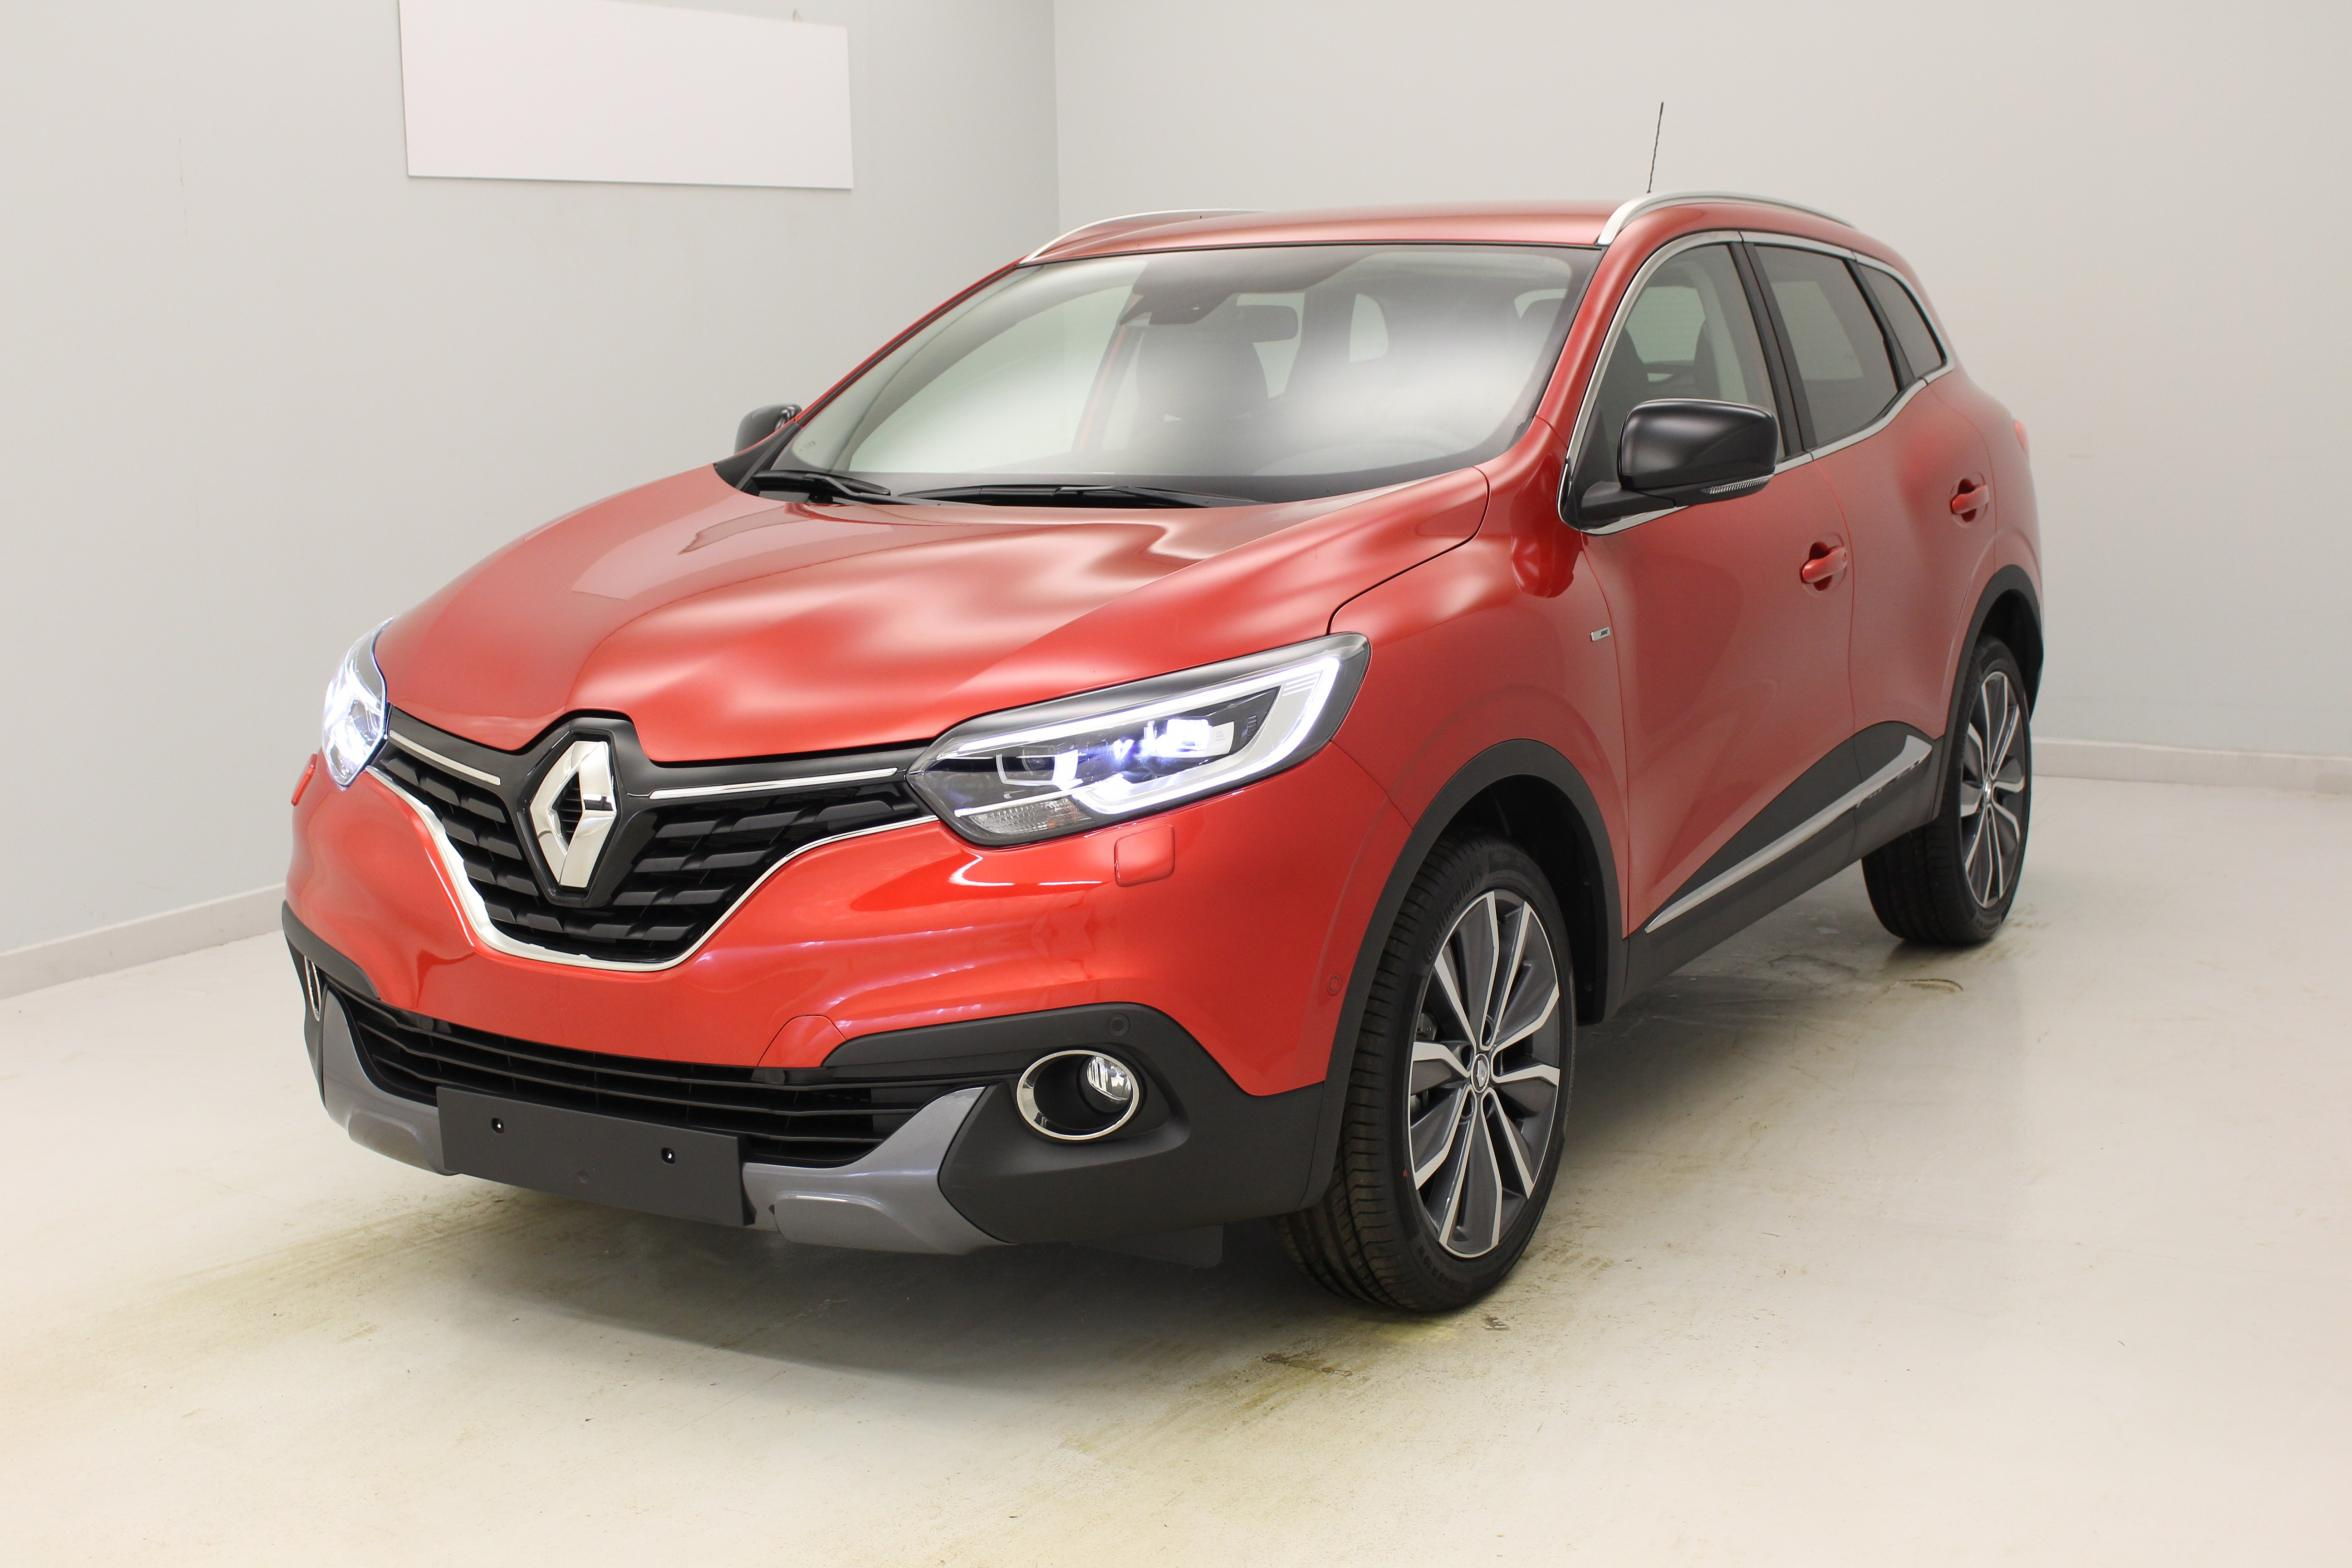 RENAULT Kadjar dCi 110 Energy eco² Intens Rouge Flamme + Pack Cuir avec options